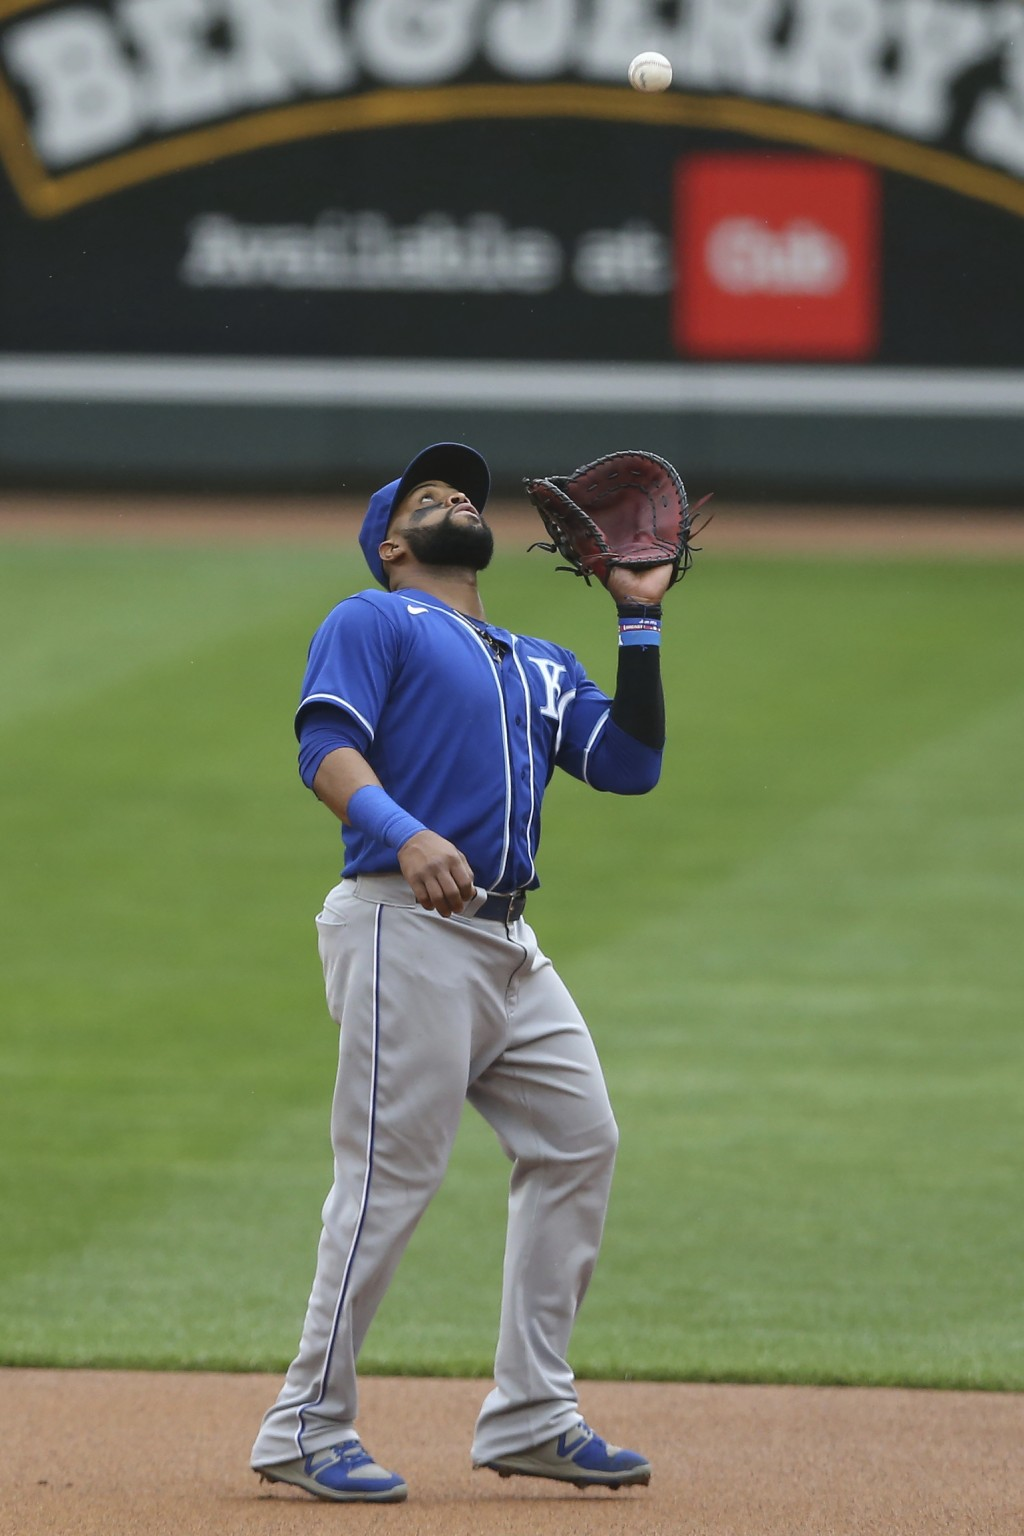 Kansas City Royals' Carlos Santana (41) catches a fly ball hit by Minnesota Timberwolves' Jarrett Culver (23) during the second inning of a baseball g...